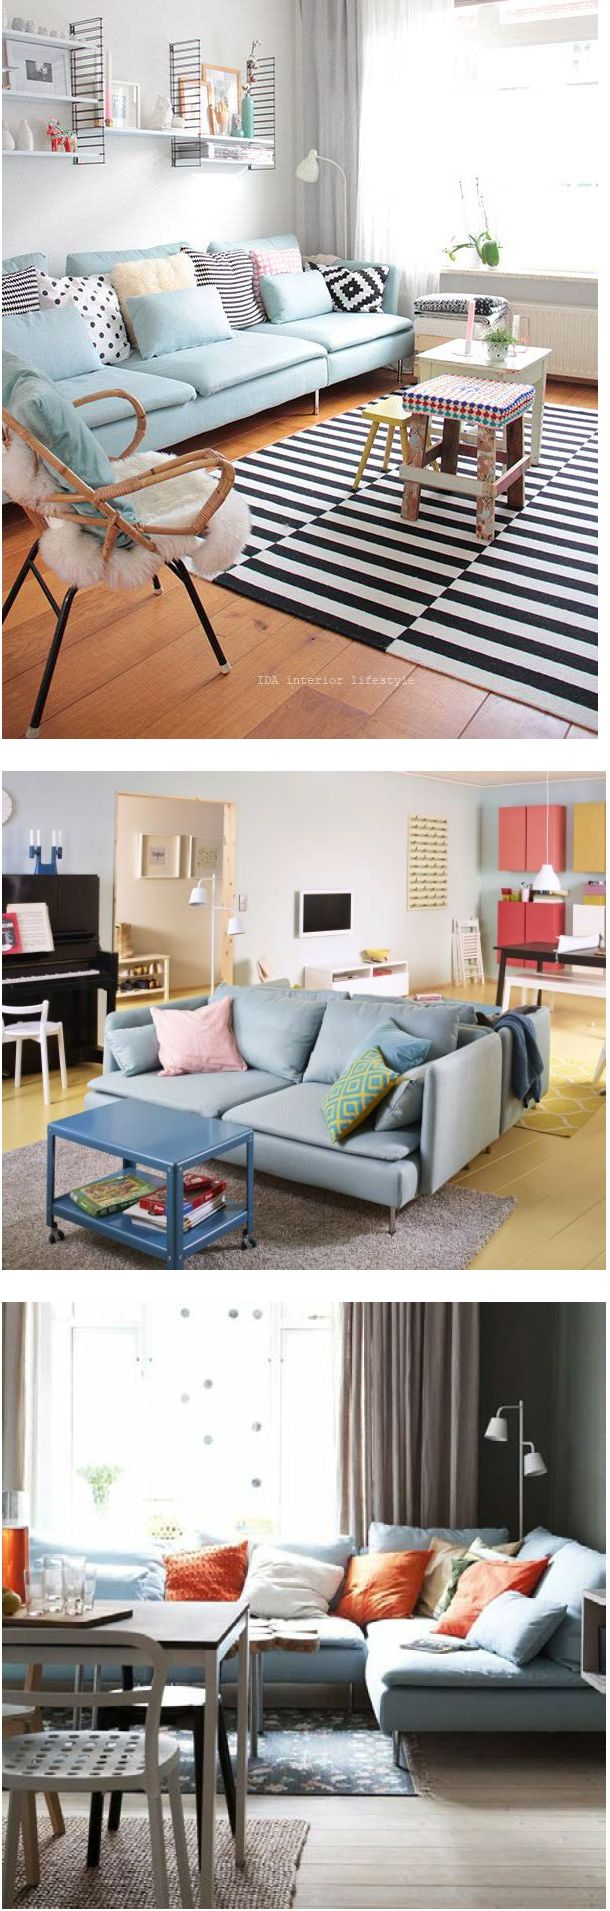 29 best ikea images on pinterest cabinets creative and decoration with sderhamn you can create a sofa that fits the way you relax there are lots of pieces to choose from and the deep seats and moveable back cushions parisarafo Image collections